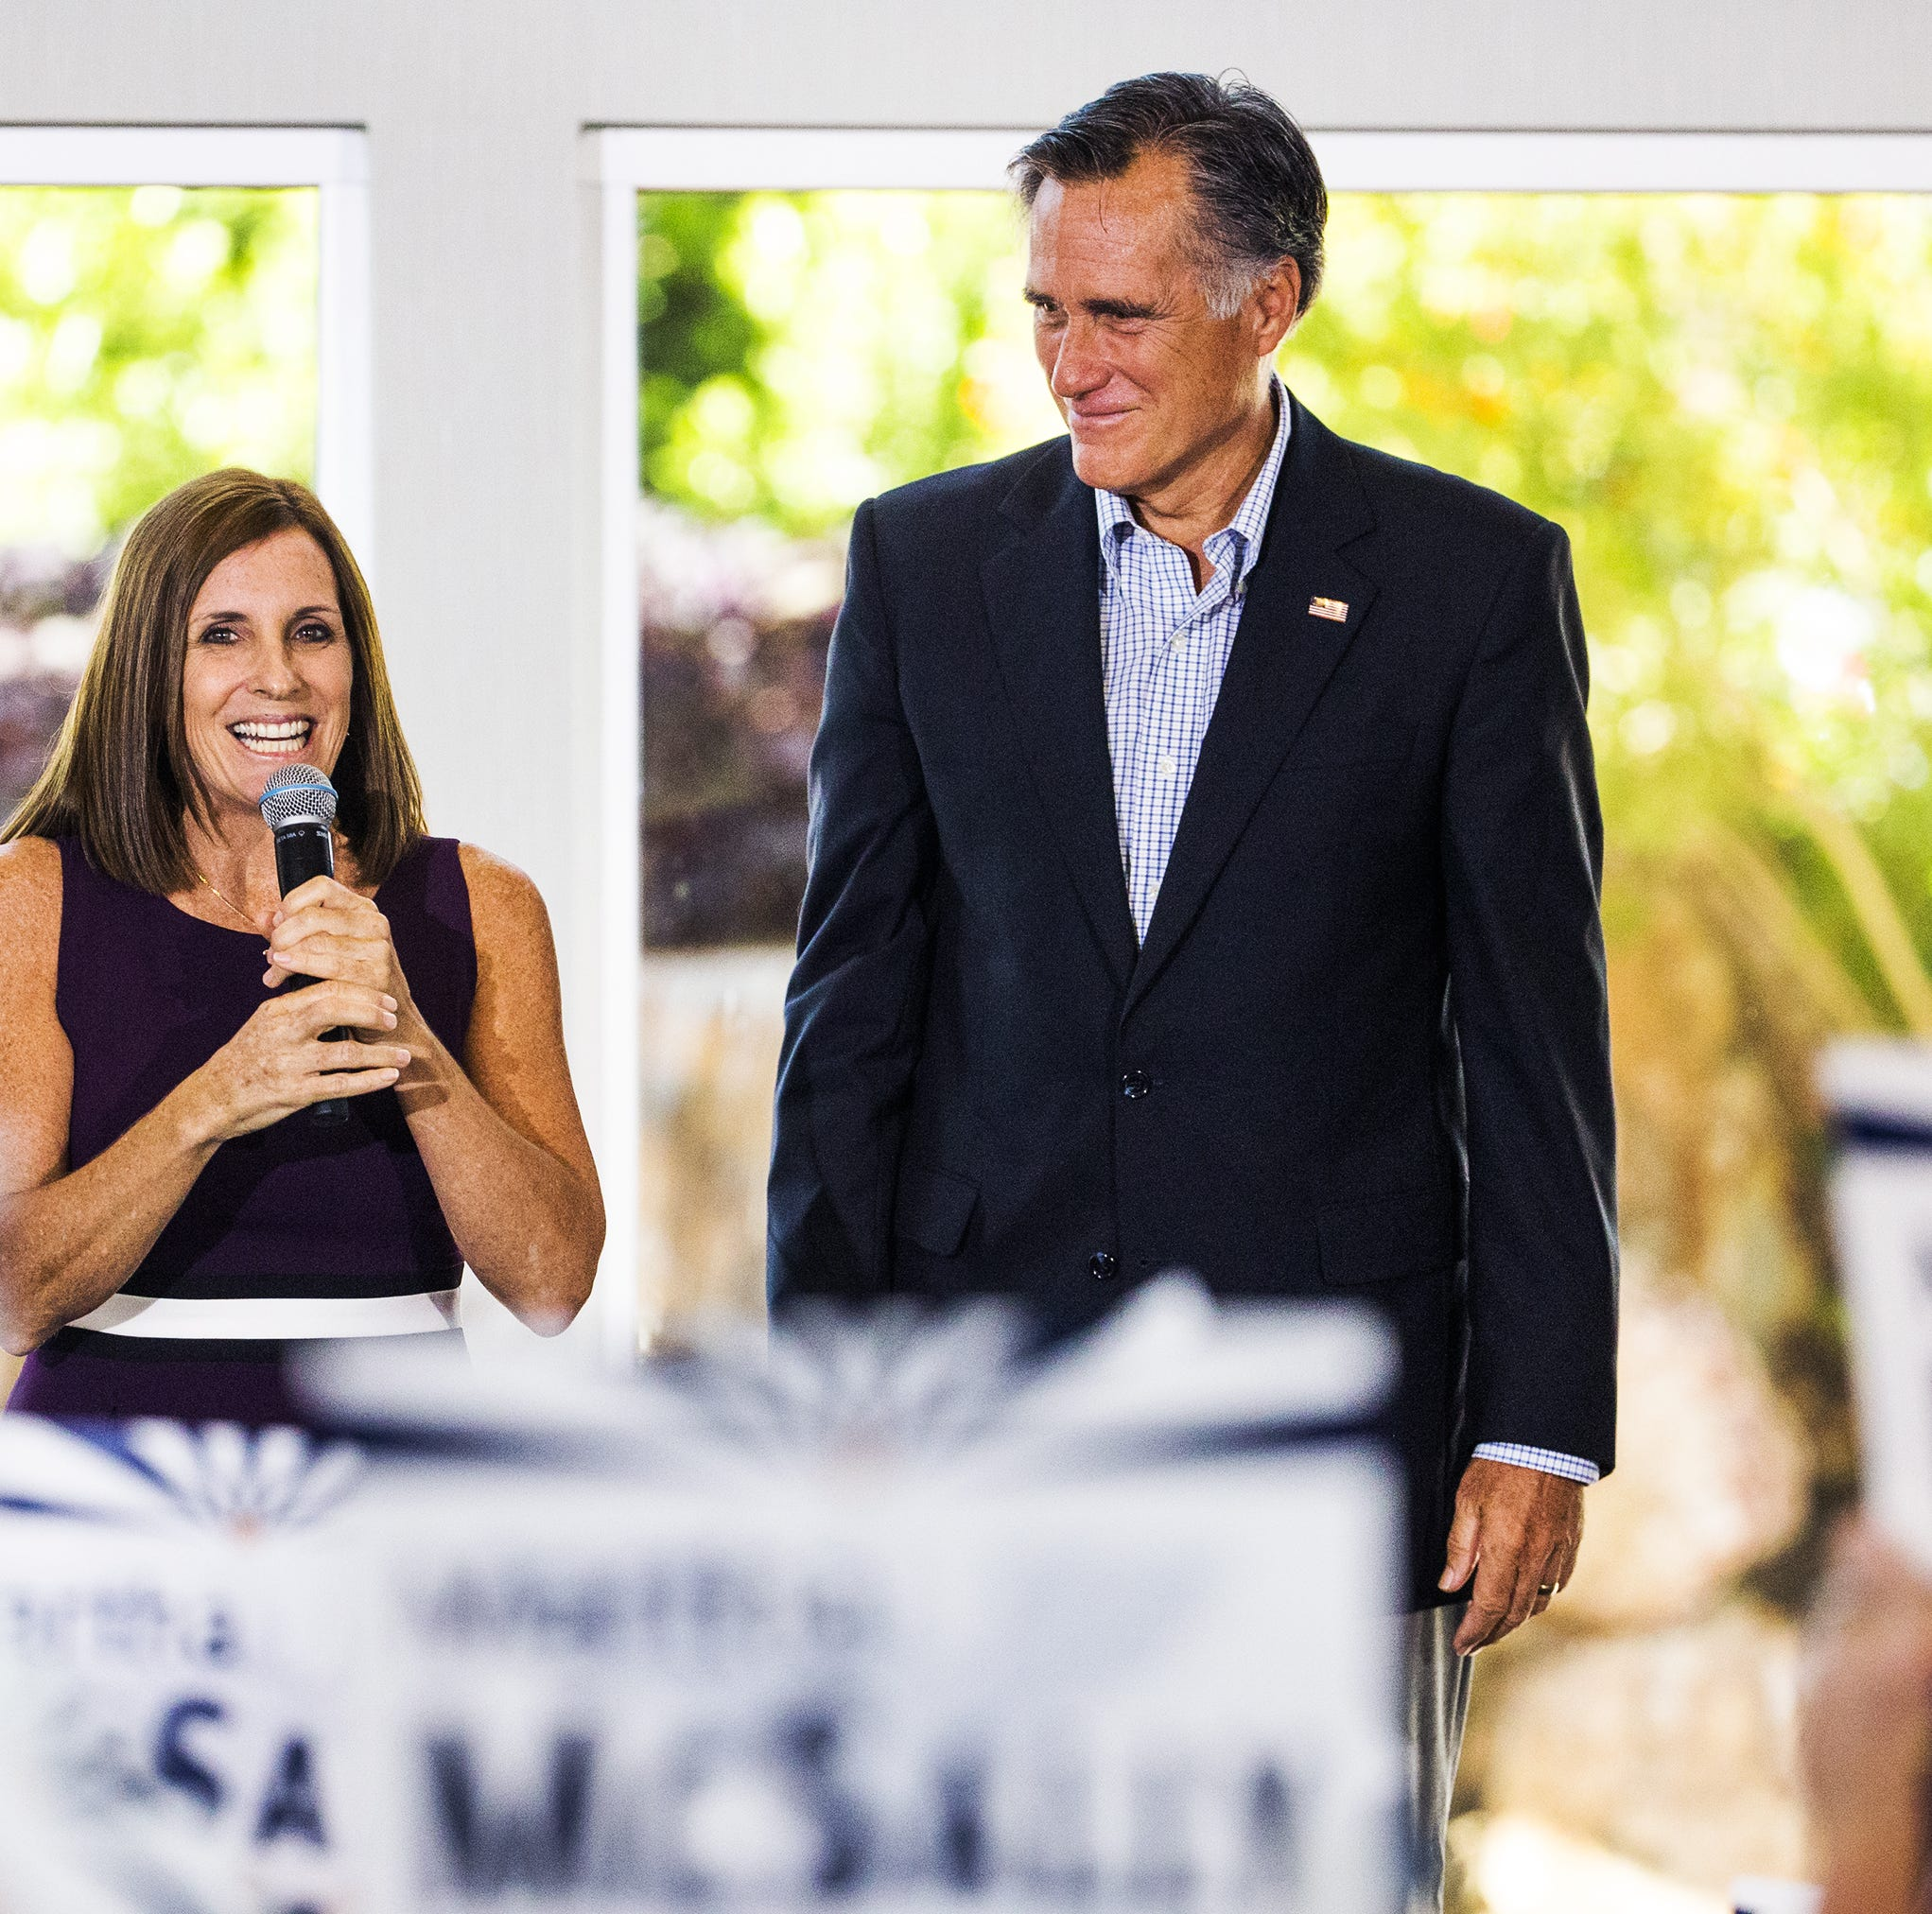 Mitt Romney boosts Martha McSally: She 'has fought for American safety'